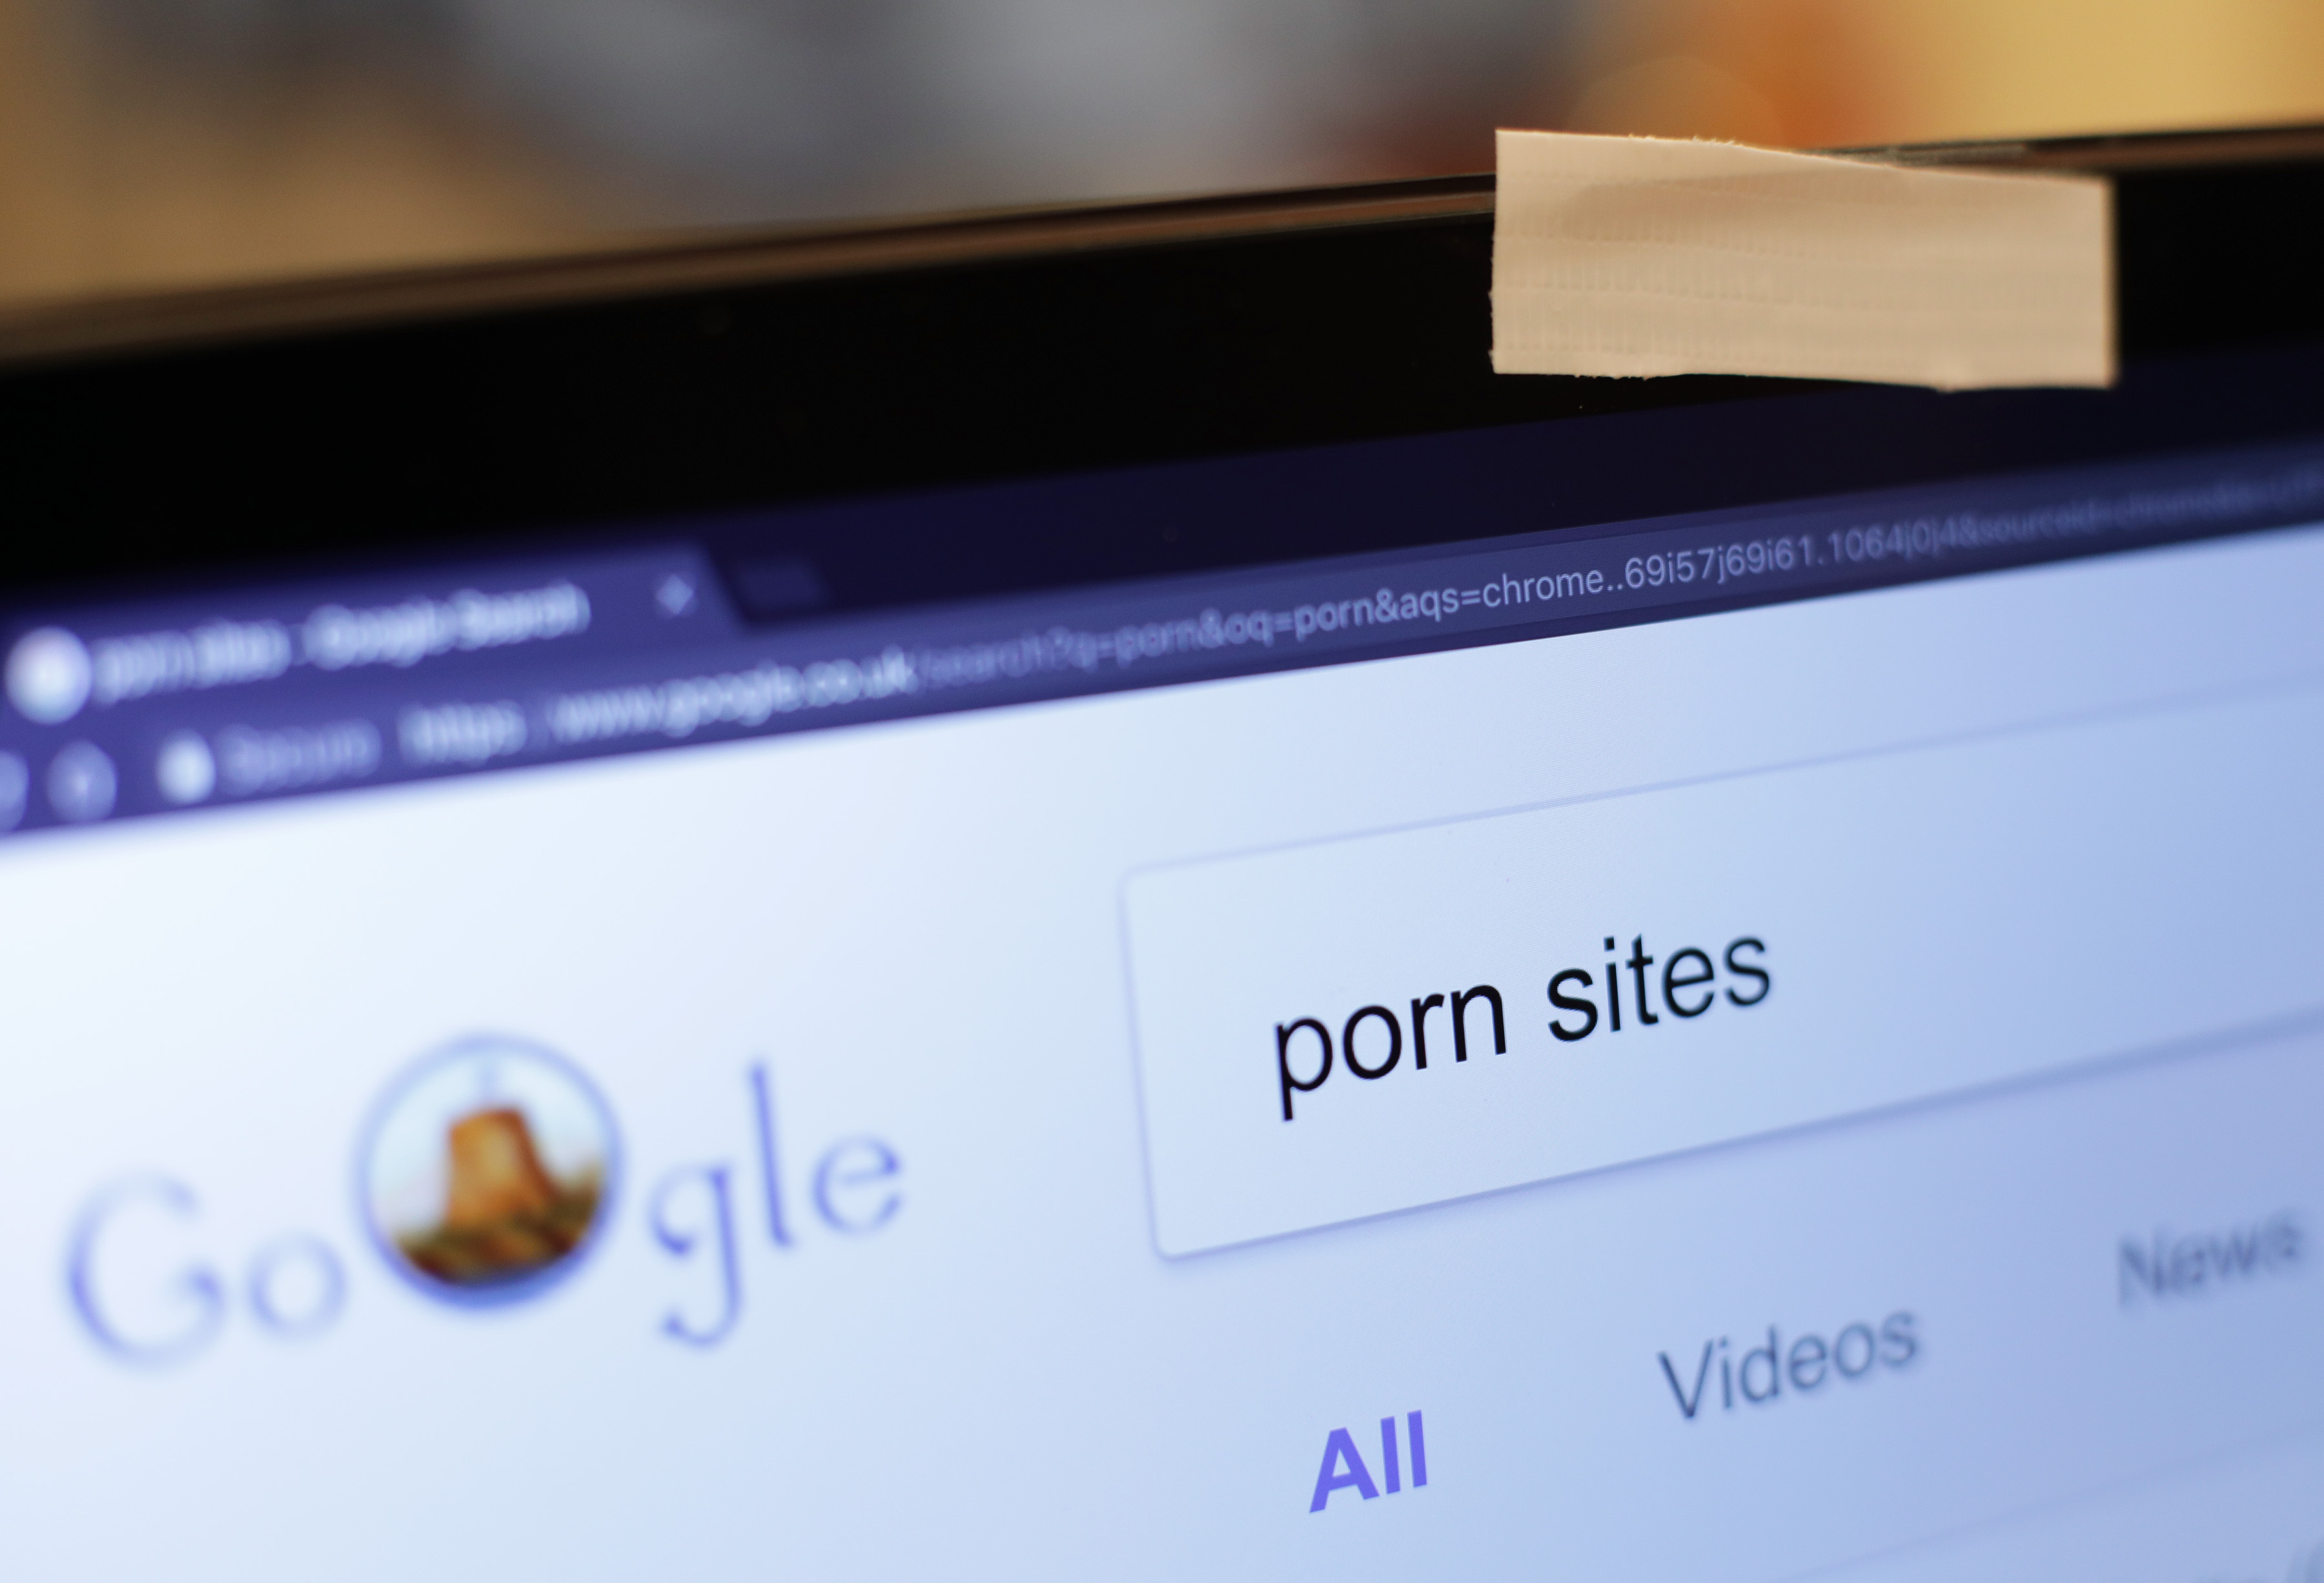 Watching Porn at an Early Age Linked to Poor Attitudes Toward Women